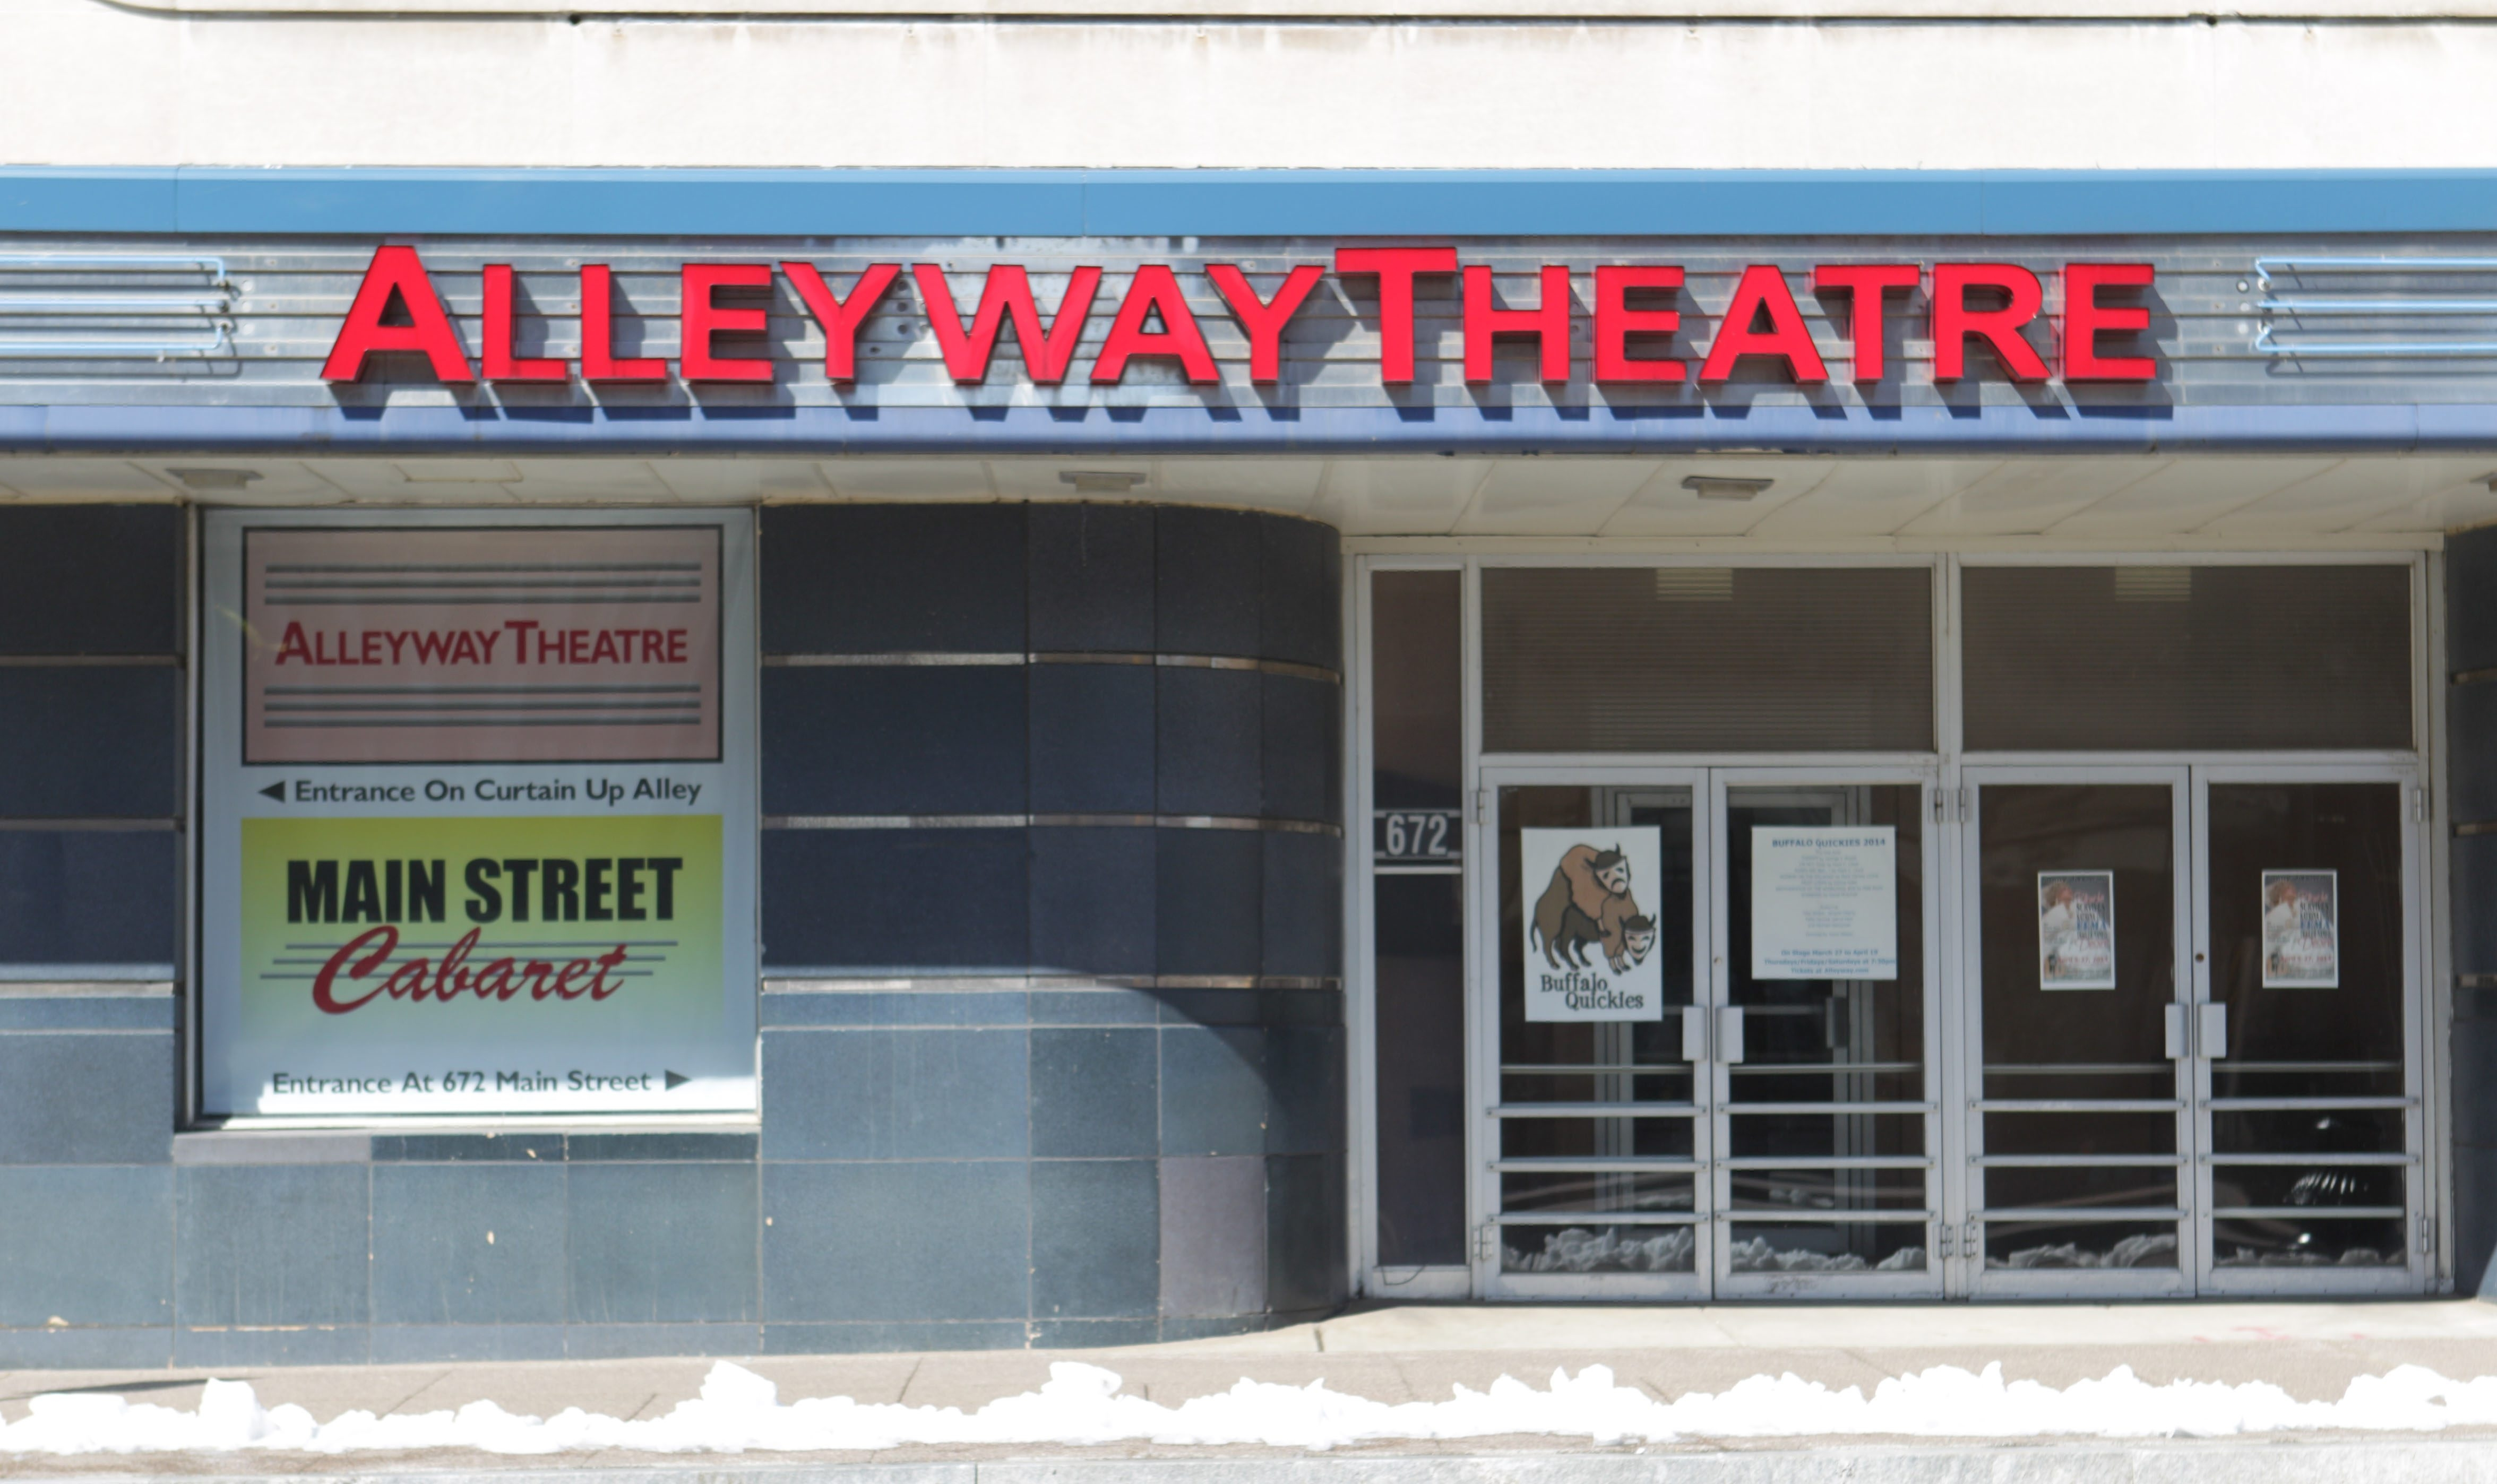 Buffalo United Artists will call Alleyway Theatre home for the 2014-15 season. (Sharon Cantillon/Buffalo News)